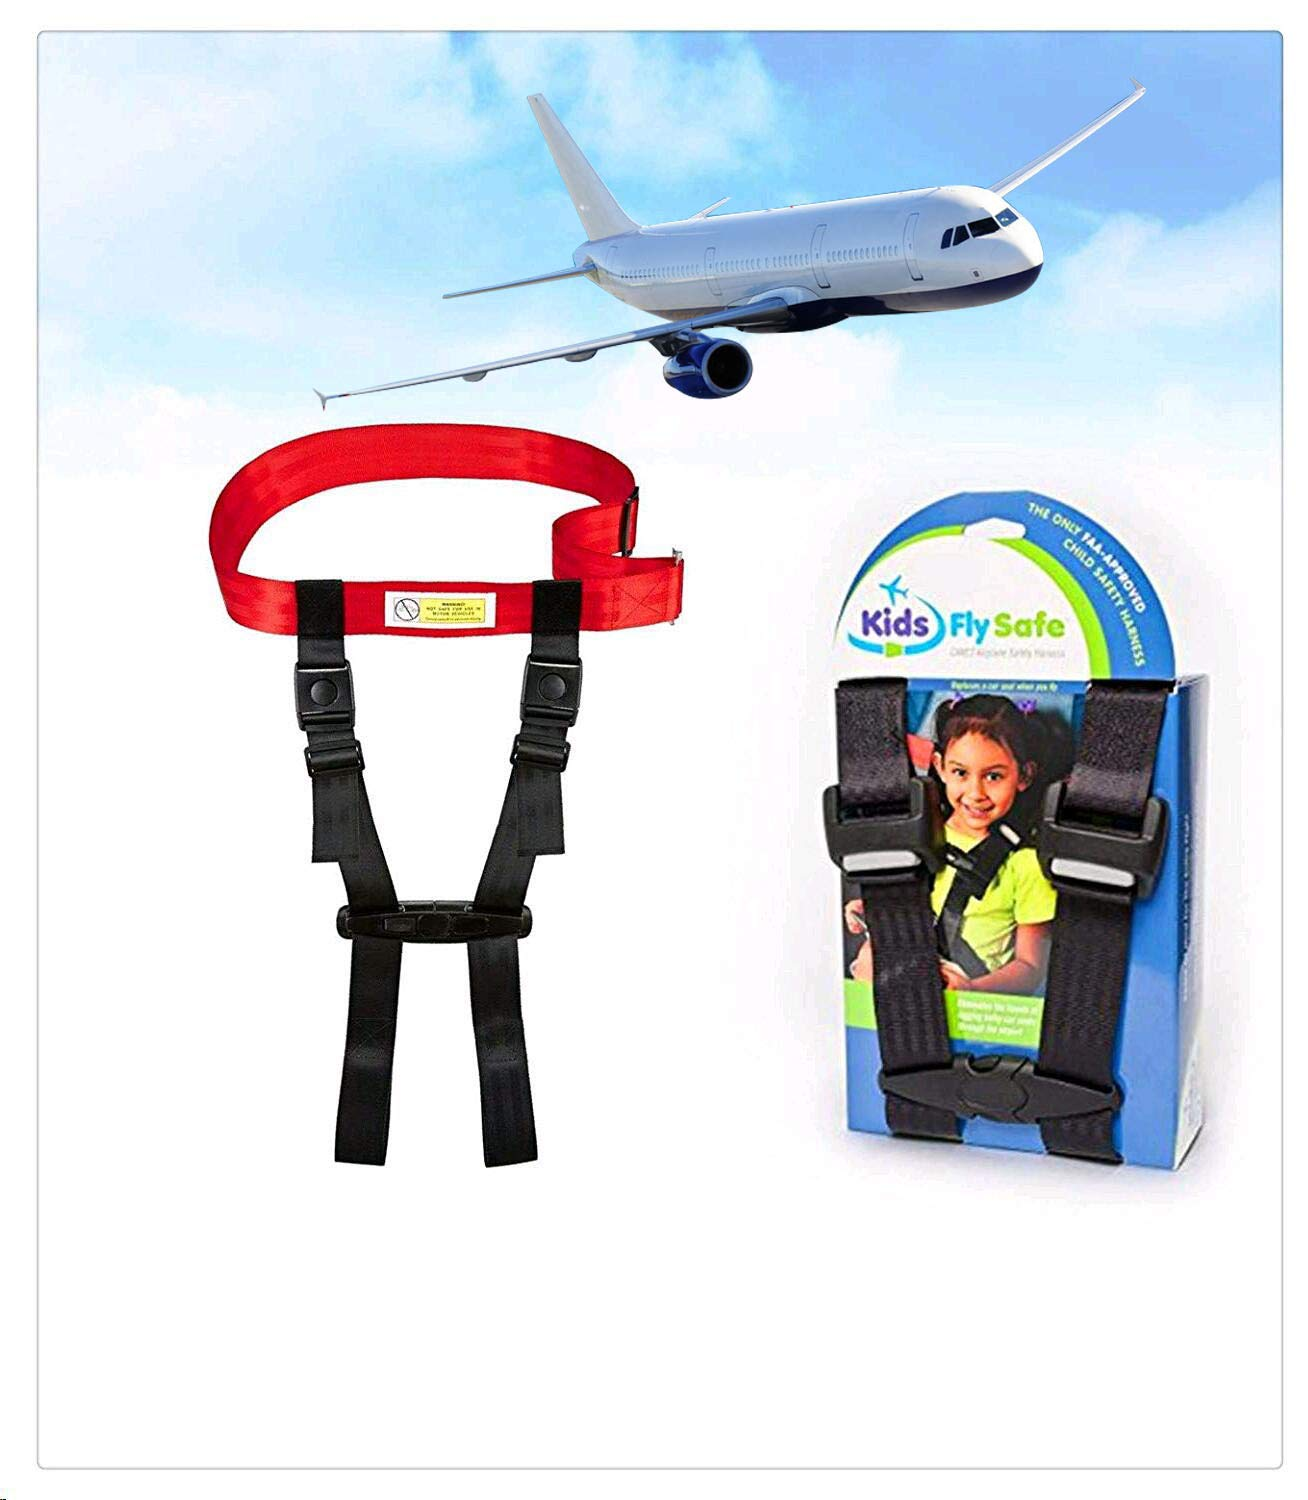 Child Airplane Travel Harness - Cares Safety Restraint System -Truly The Only FAA Approved Child Flying Safety Device,Baby Products,Car Seats & Accessories Booster